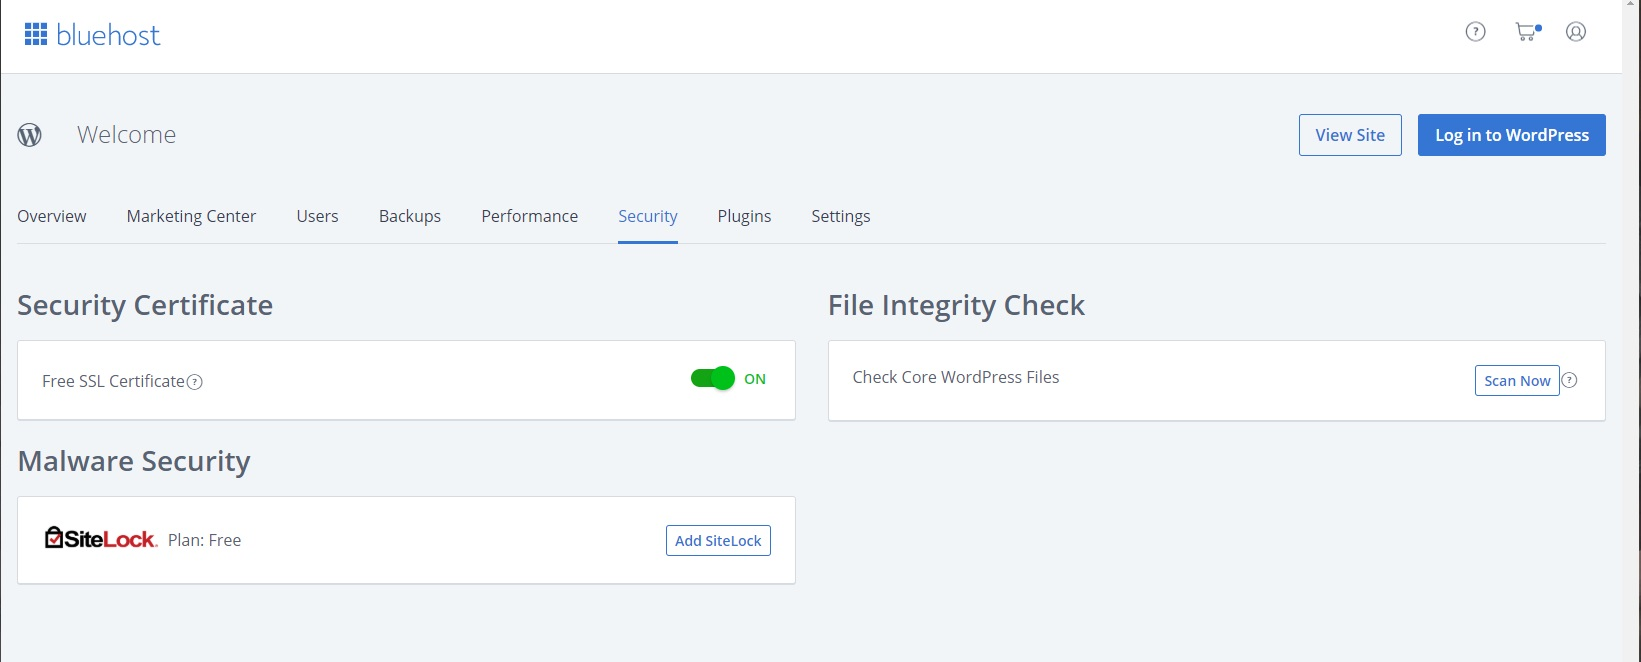 Bluehost shared hosting - interface - security tab